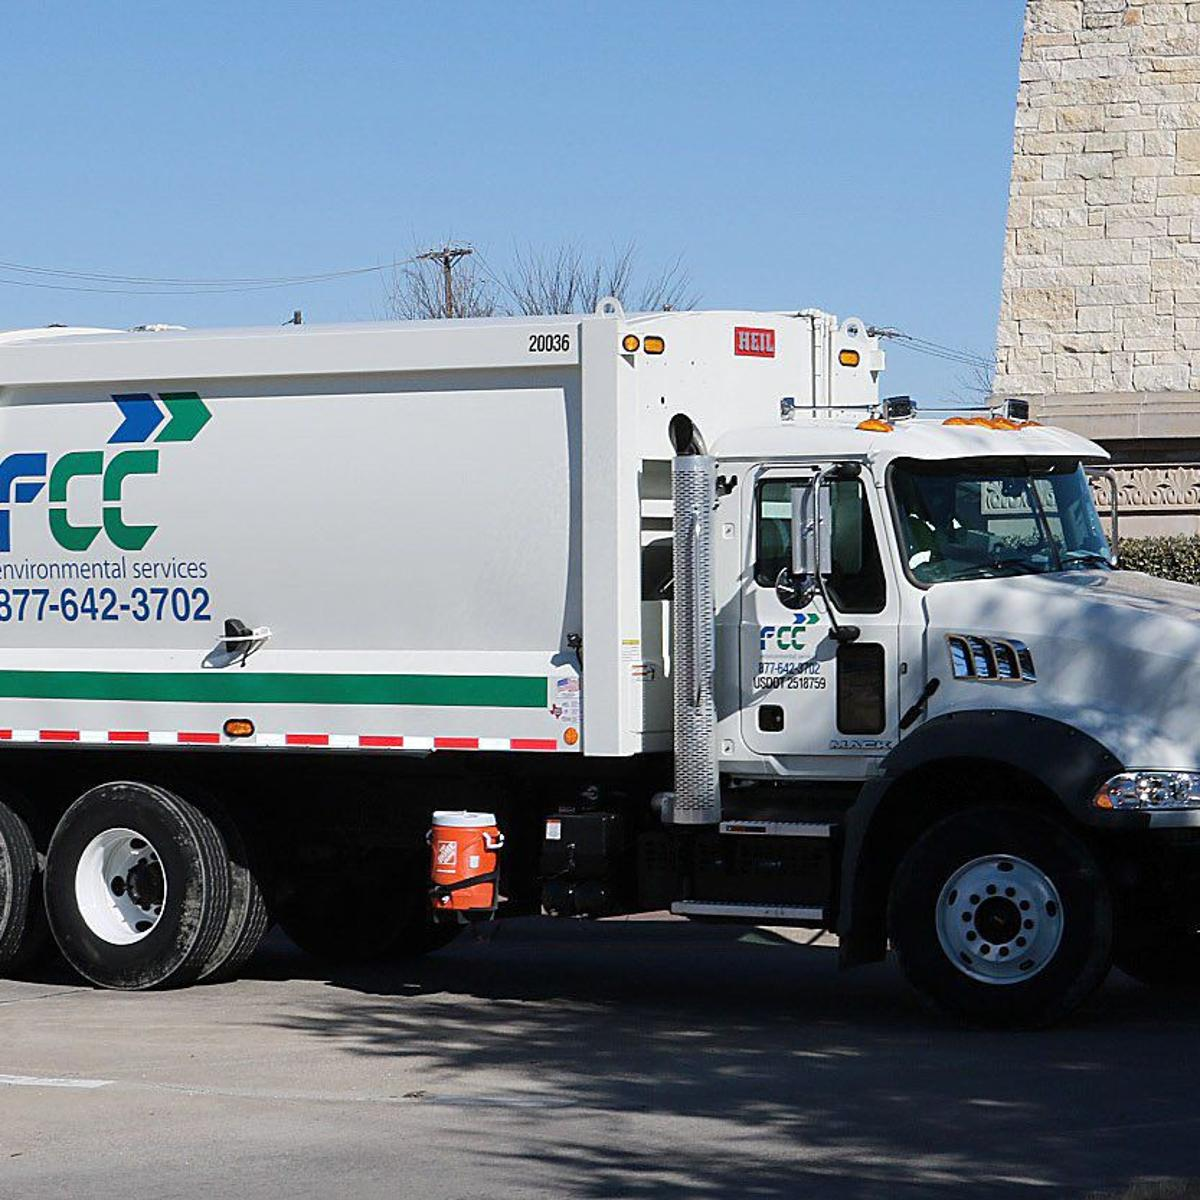 Mayor Stothert, Omaha Public Works: FCC's reliable trash pickup is